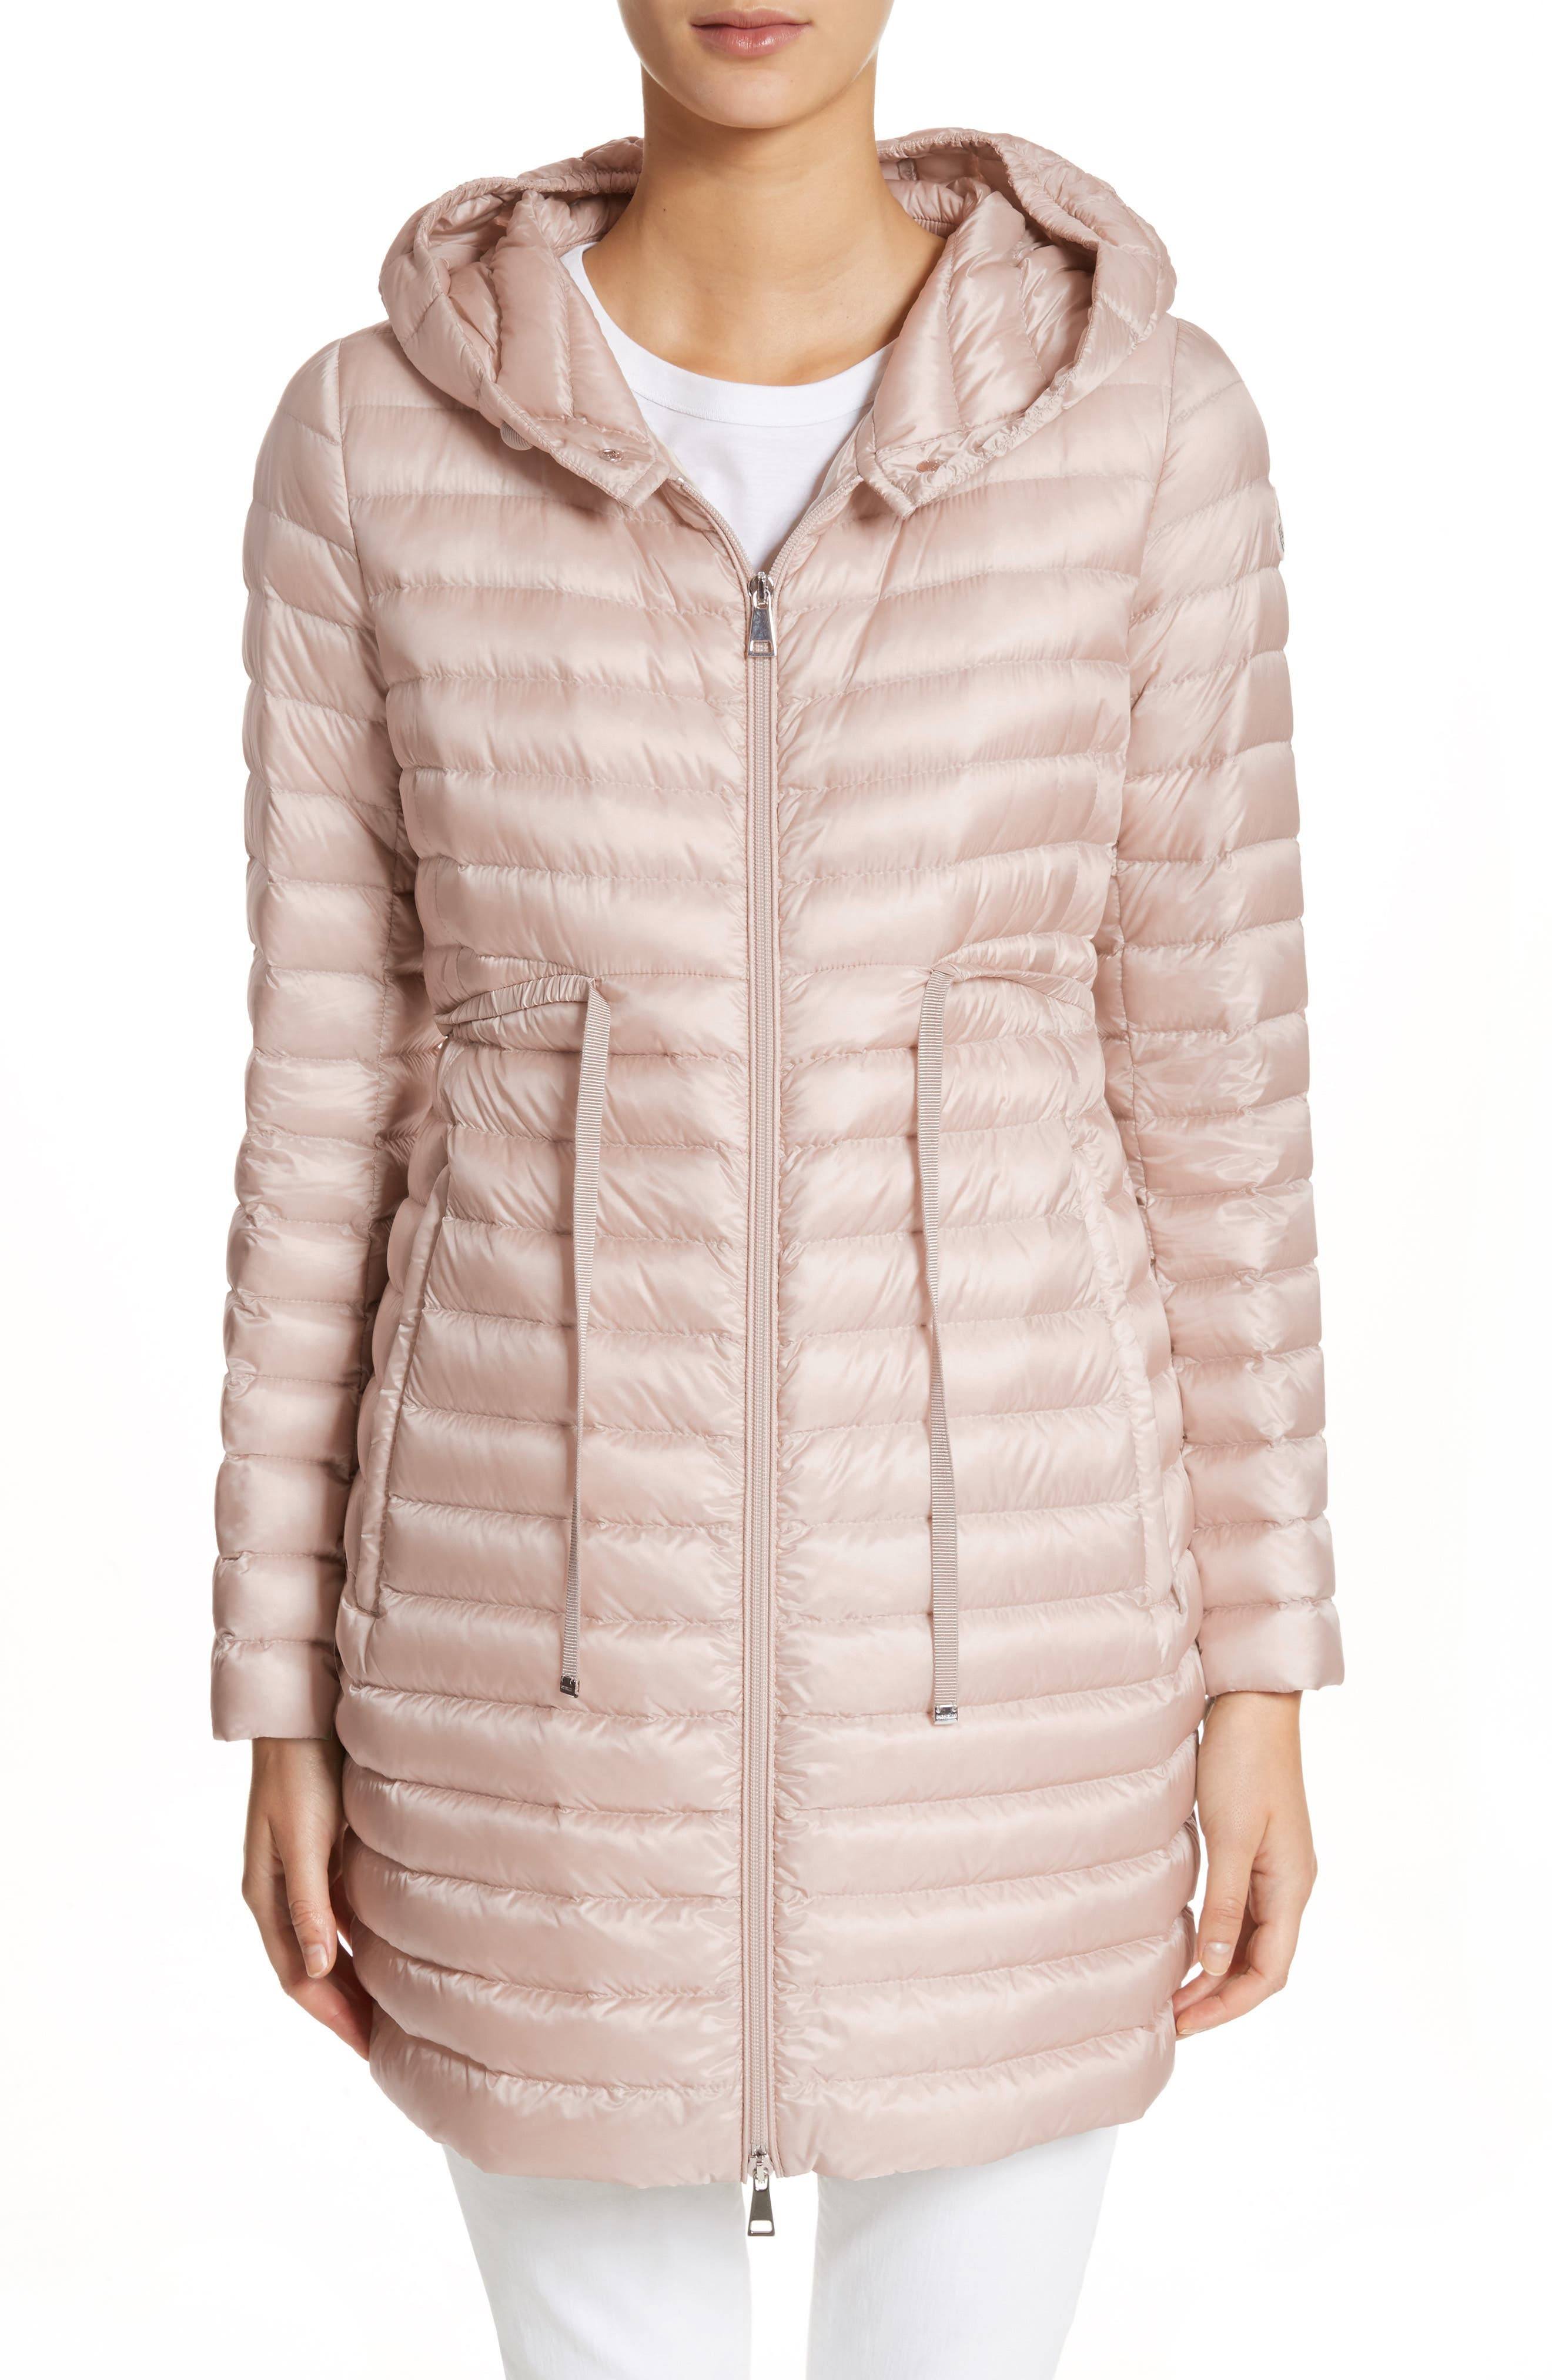 Barbel Water Resistant Long Hooded Down Jacket,                         Main,                         color, BLUSH